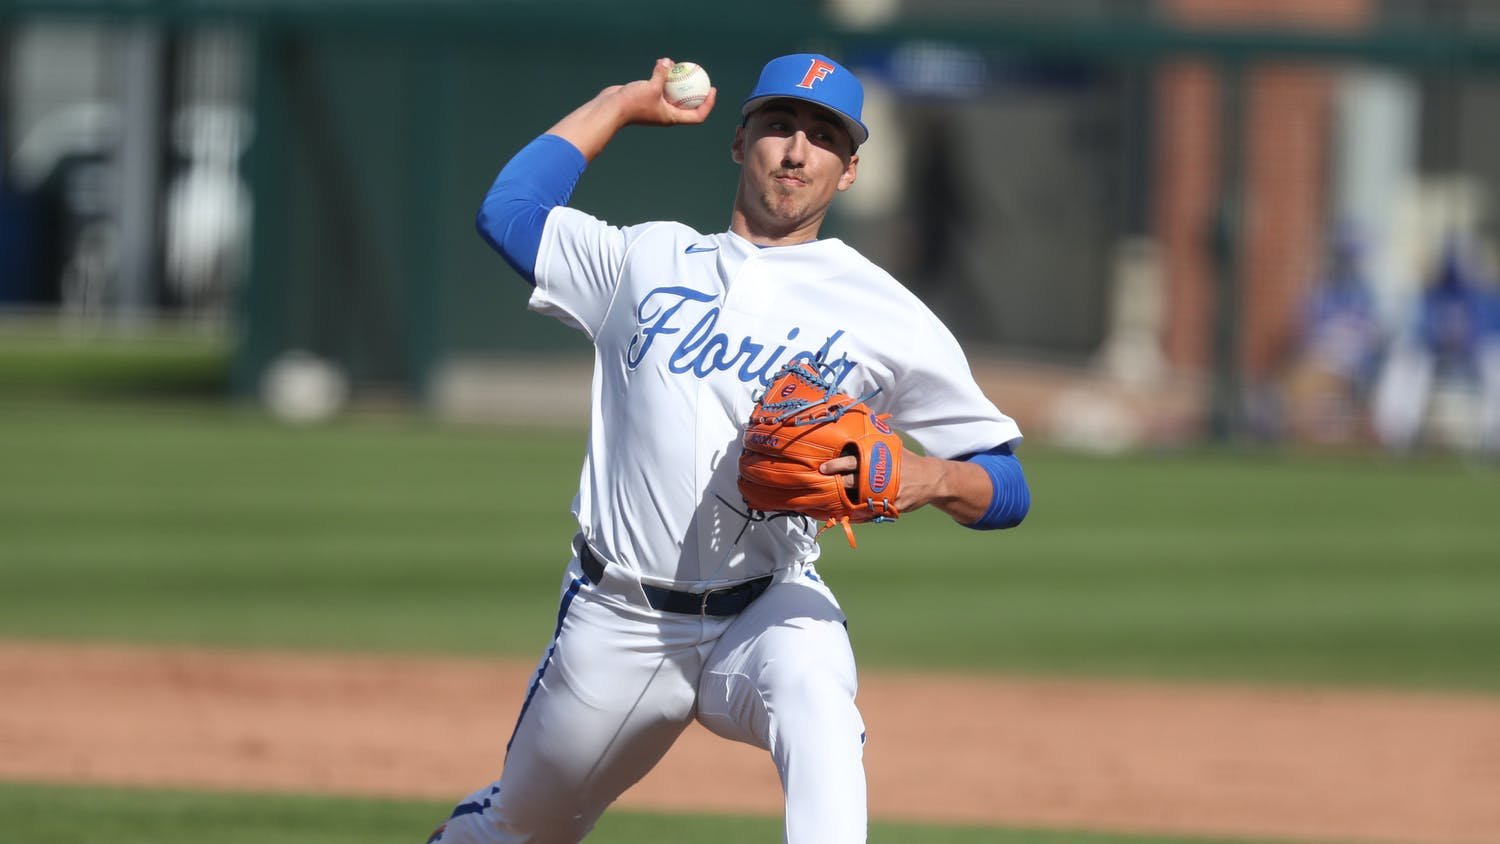 The 3-2 defeat became the second extra-inning disappointment of the year. Photo from UF-UM game Feb. 21. Courtesy of the SEC Media Portal.